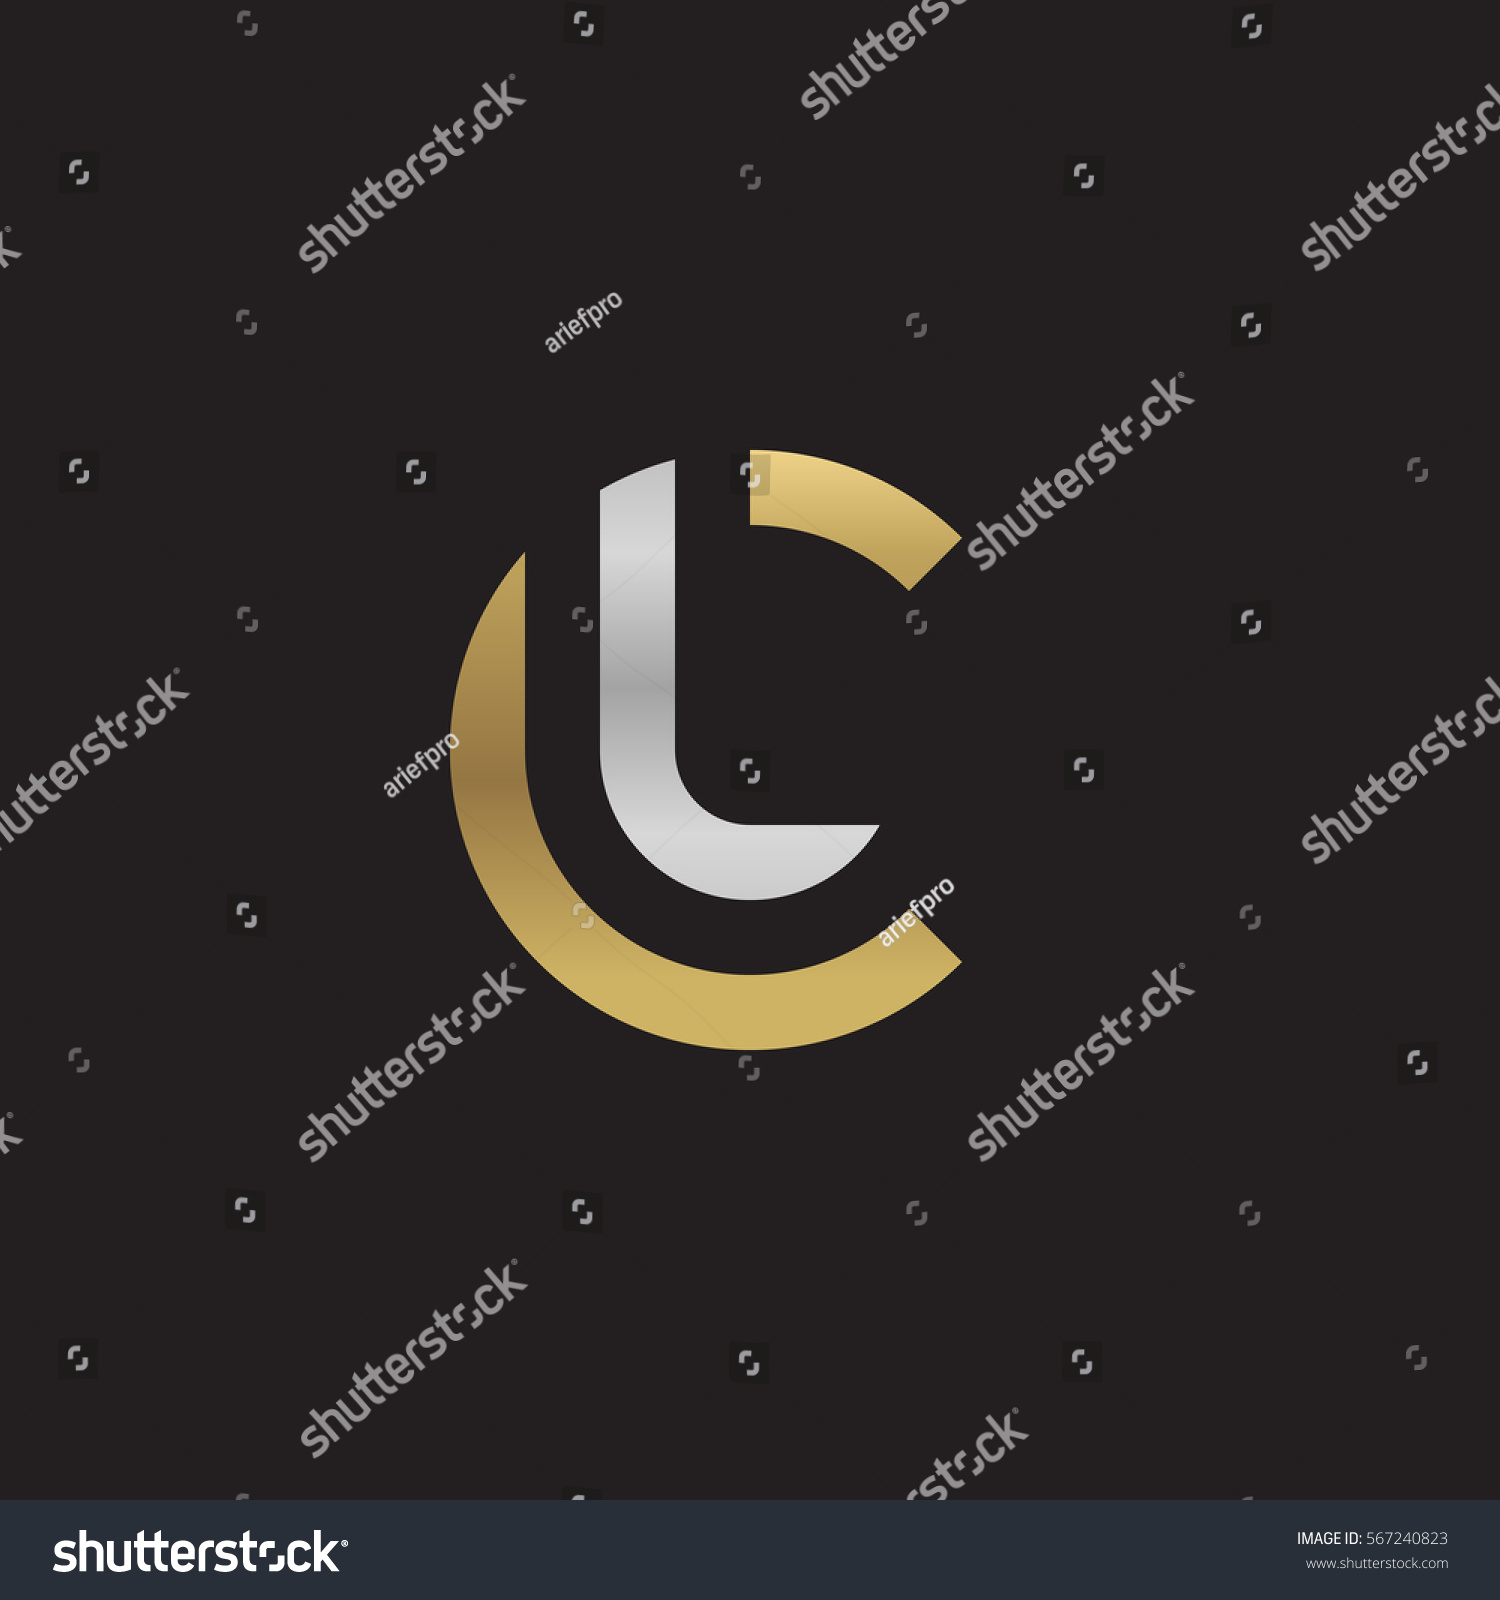 Tj initial luxury ornament monogram logo stock vector - Initial Letter Logo Cl Lc L Inside C Rounded Lowercase Logo Gold Silver